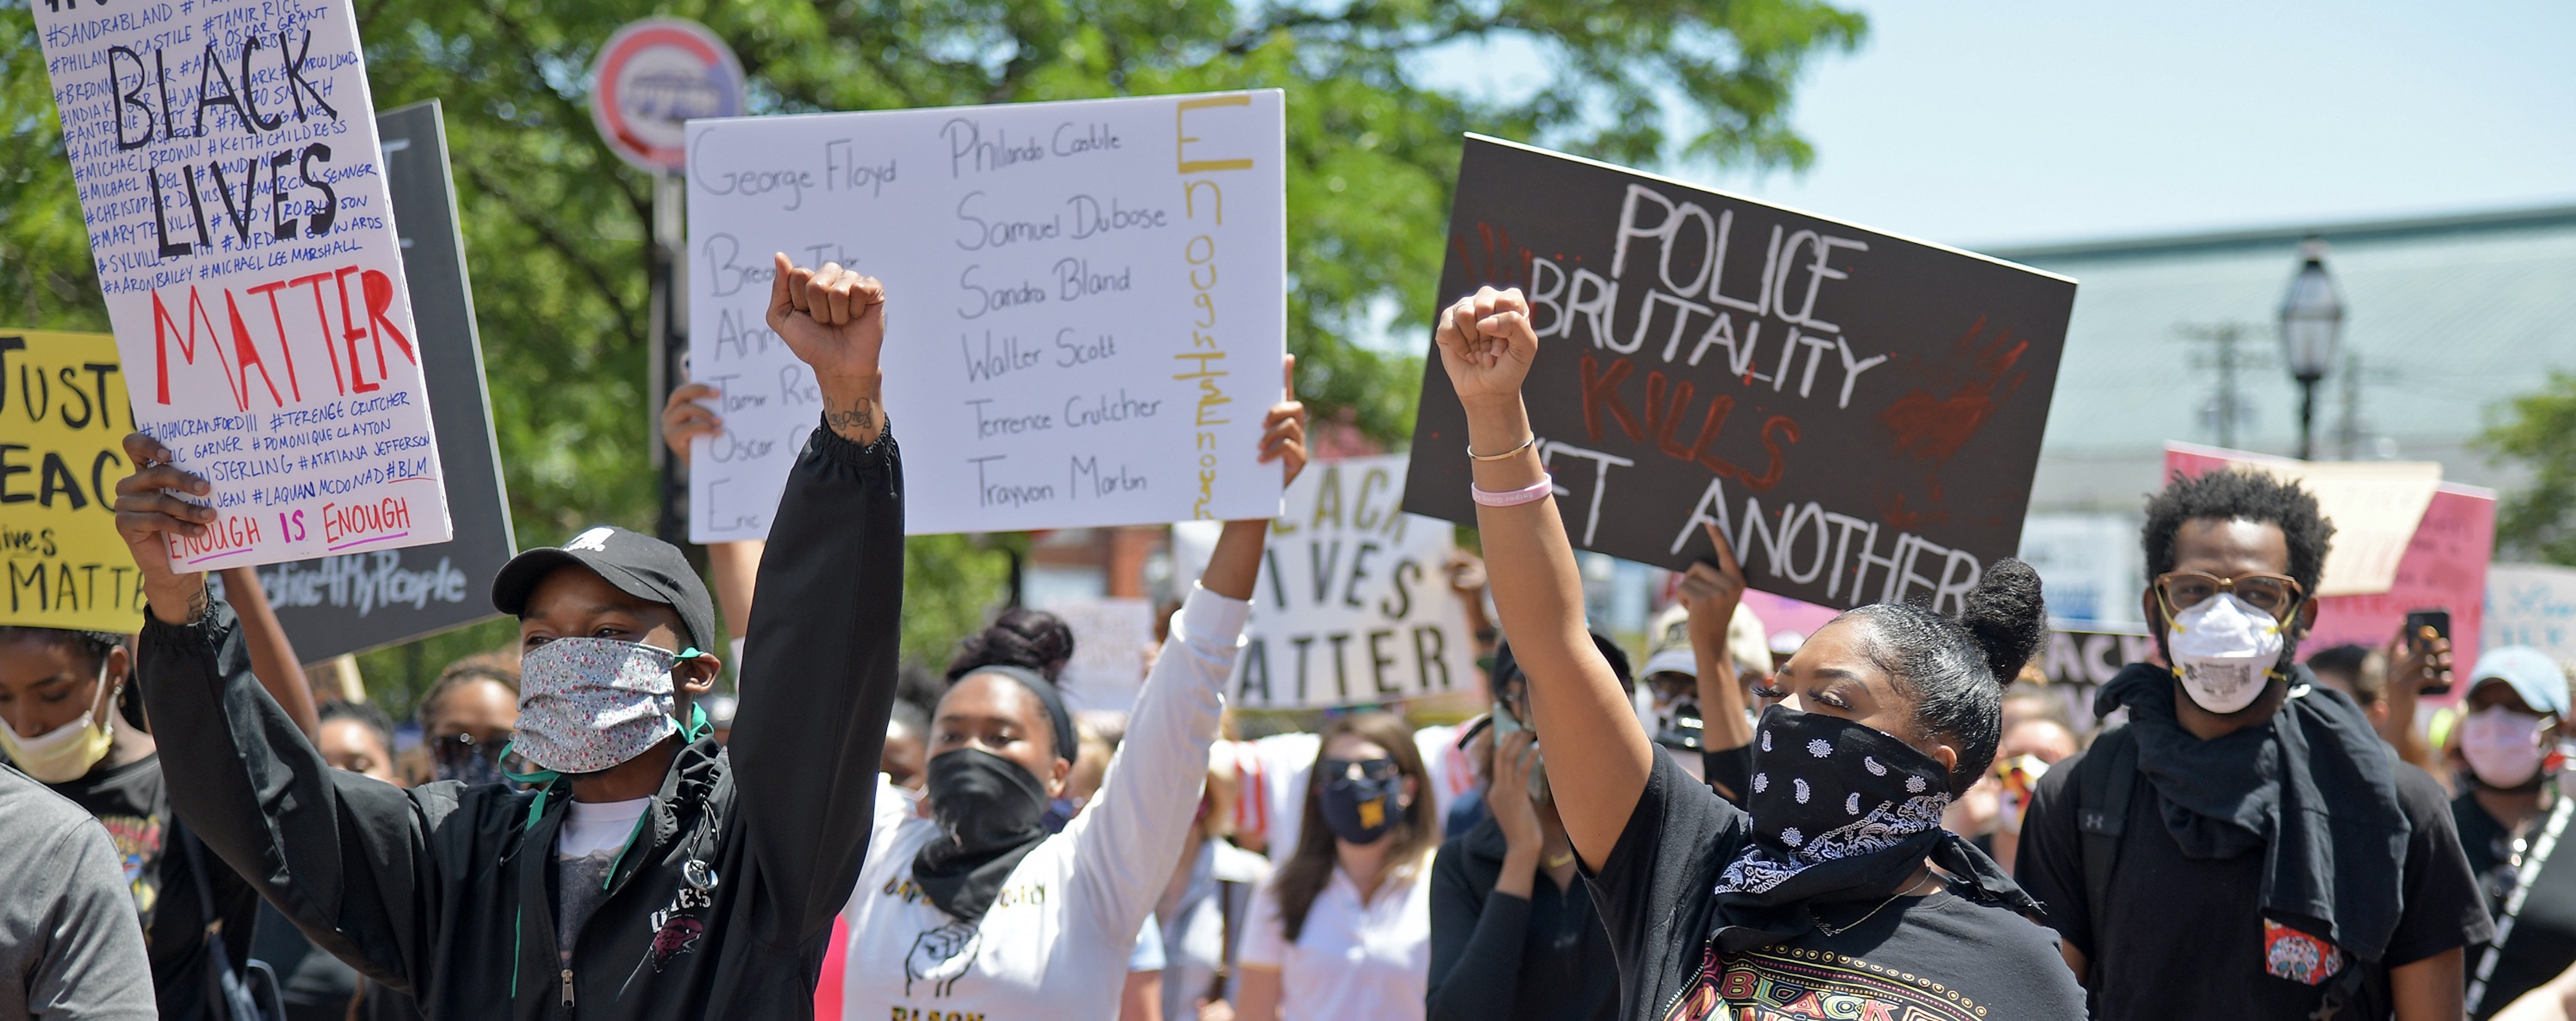 Freedom Rider: Black Misleaders Seek to End Protest